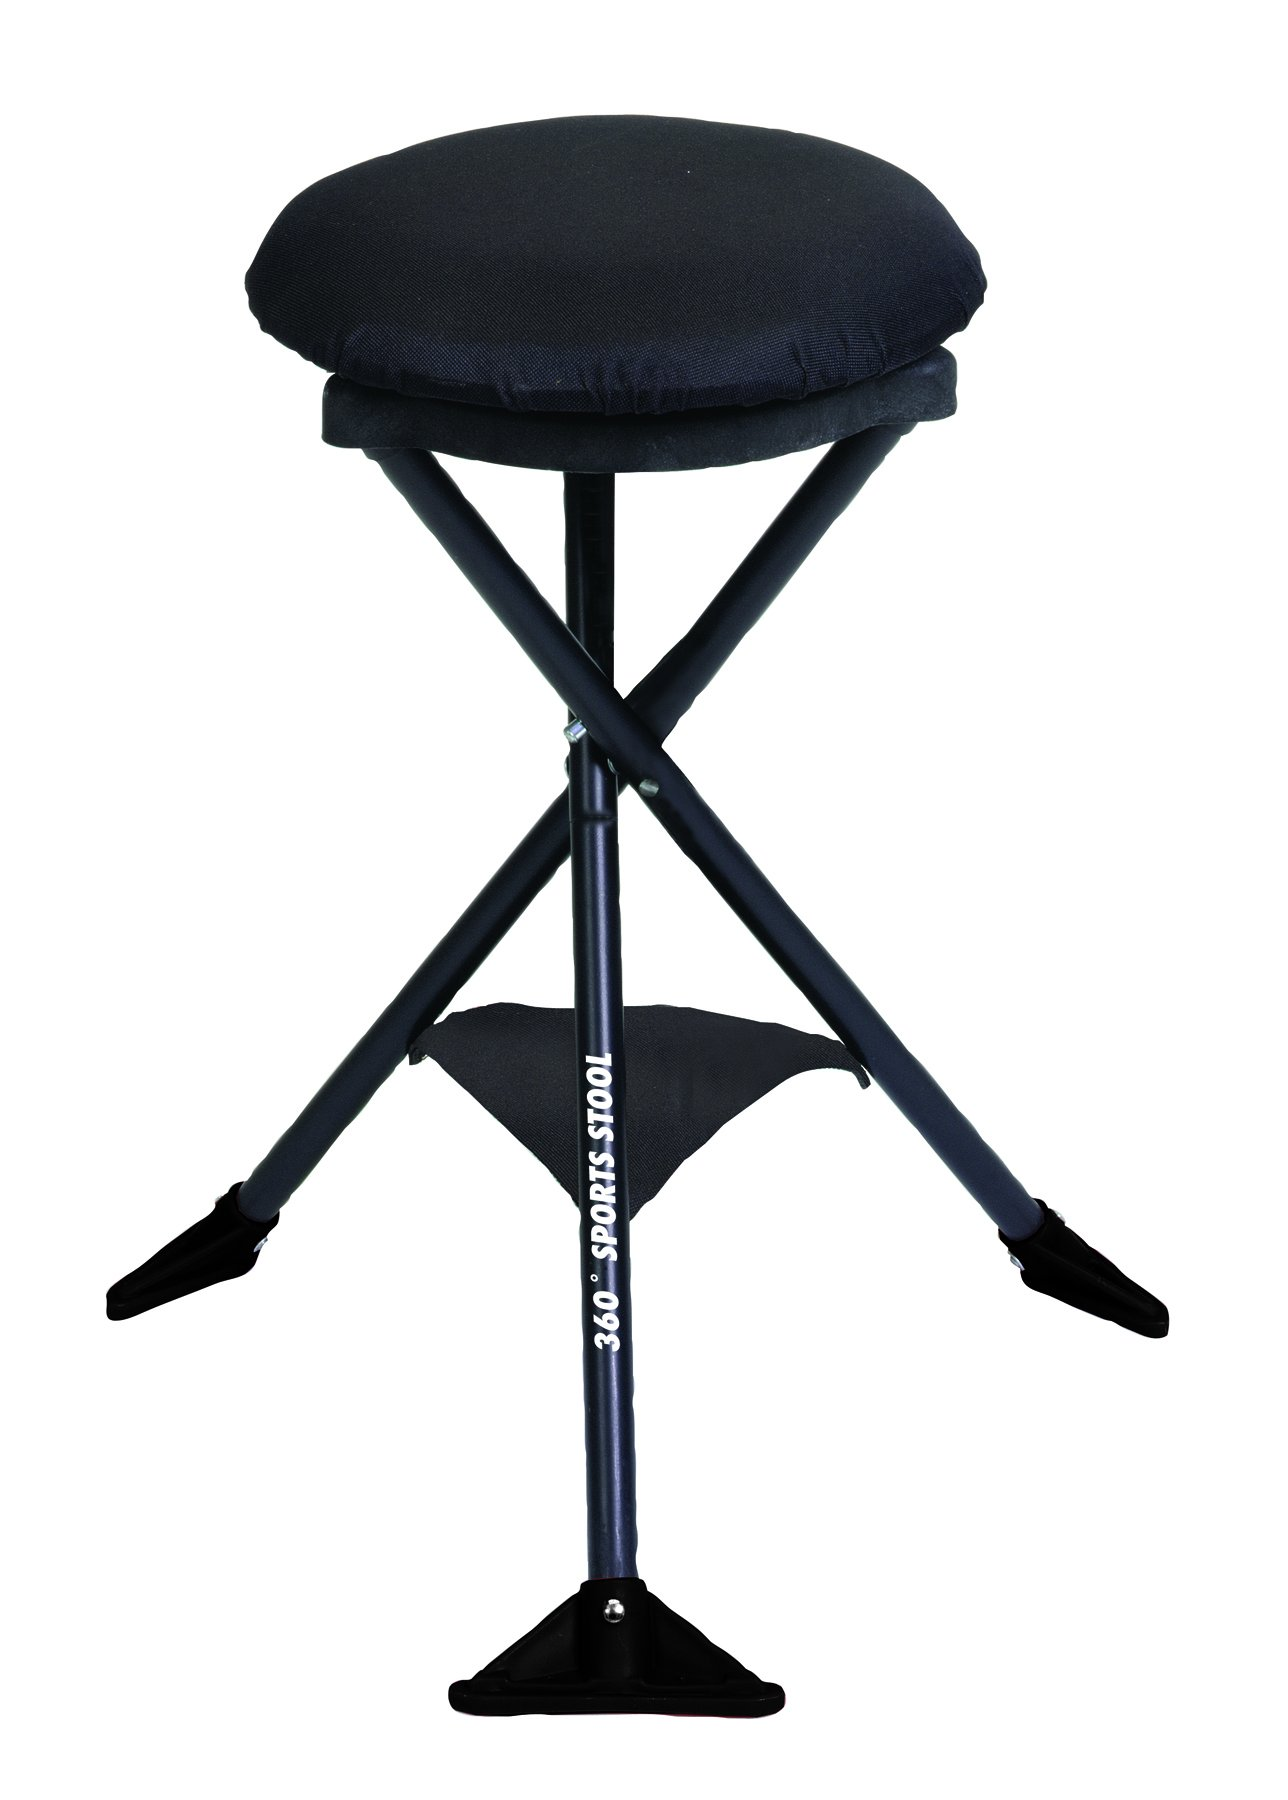 GCI Outdoor 360-Degree Swivel Portable Camping Stool by GCI Outdoor